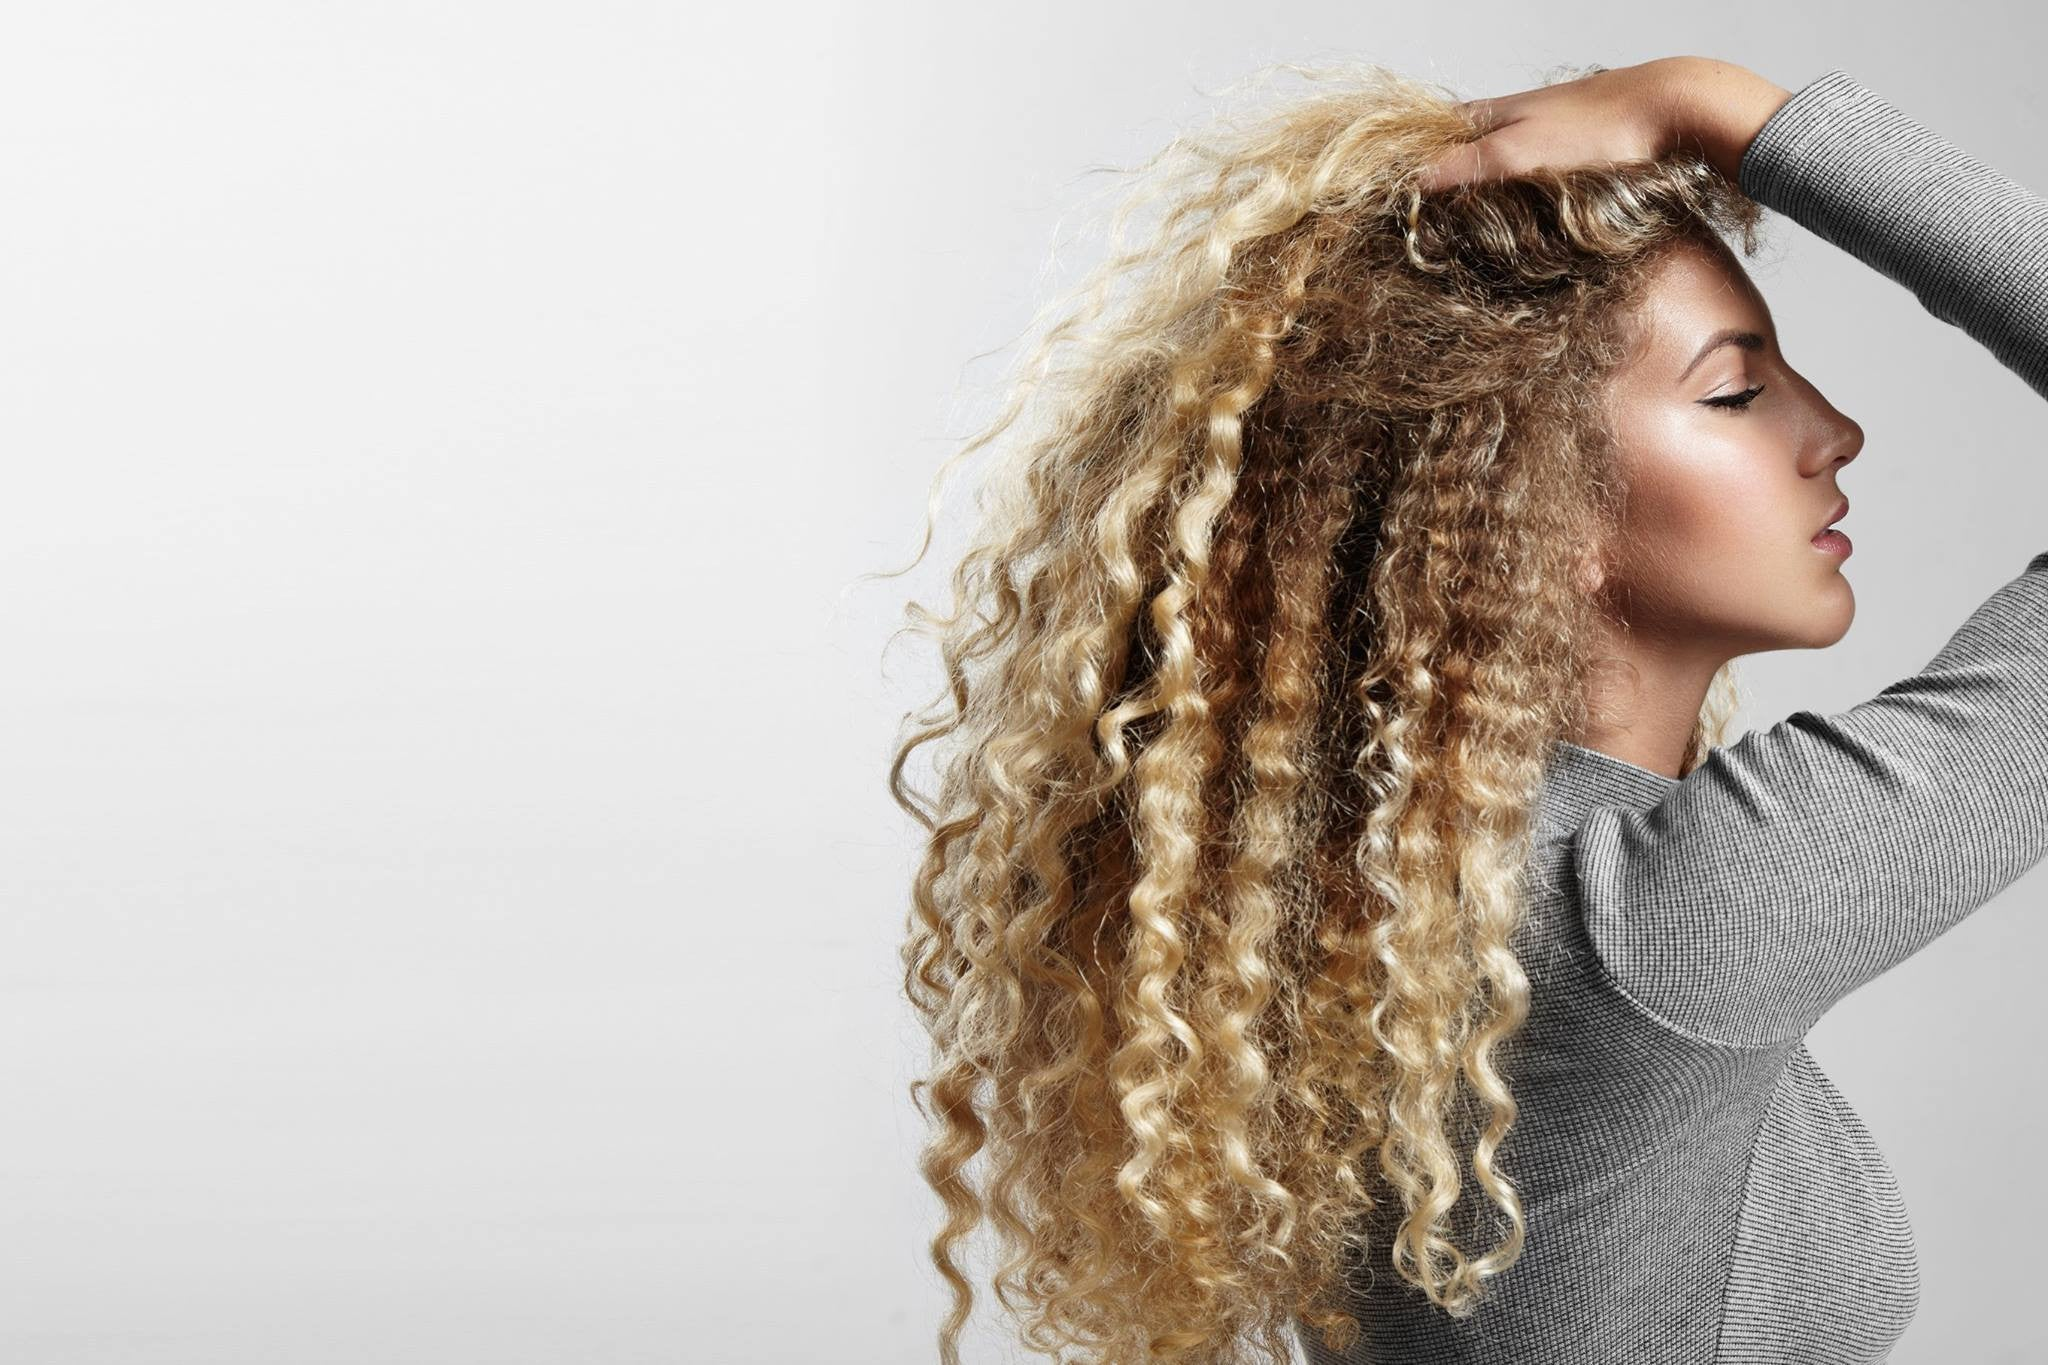 How to treat your Dandruff or Dry Scalp condition